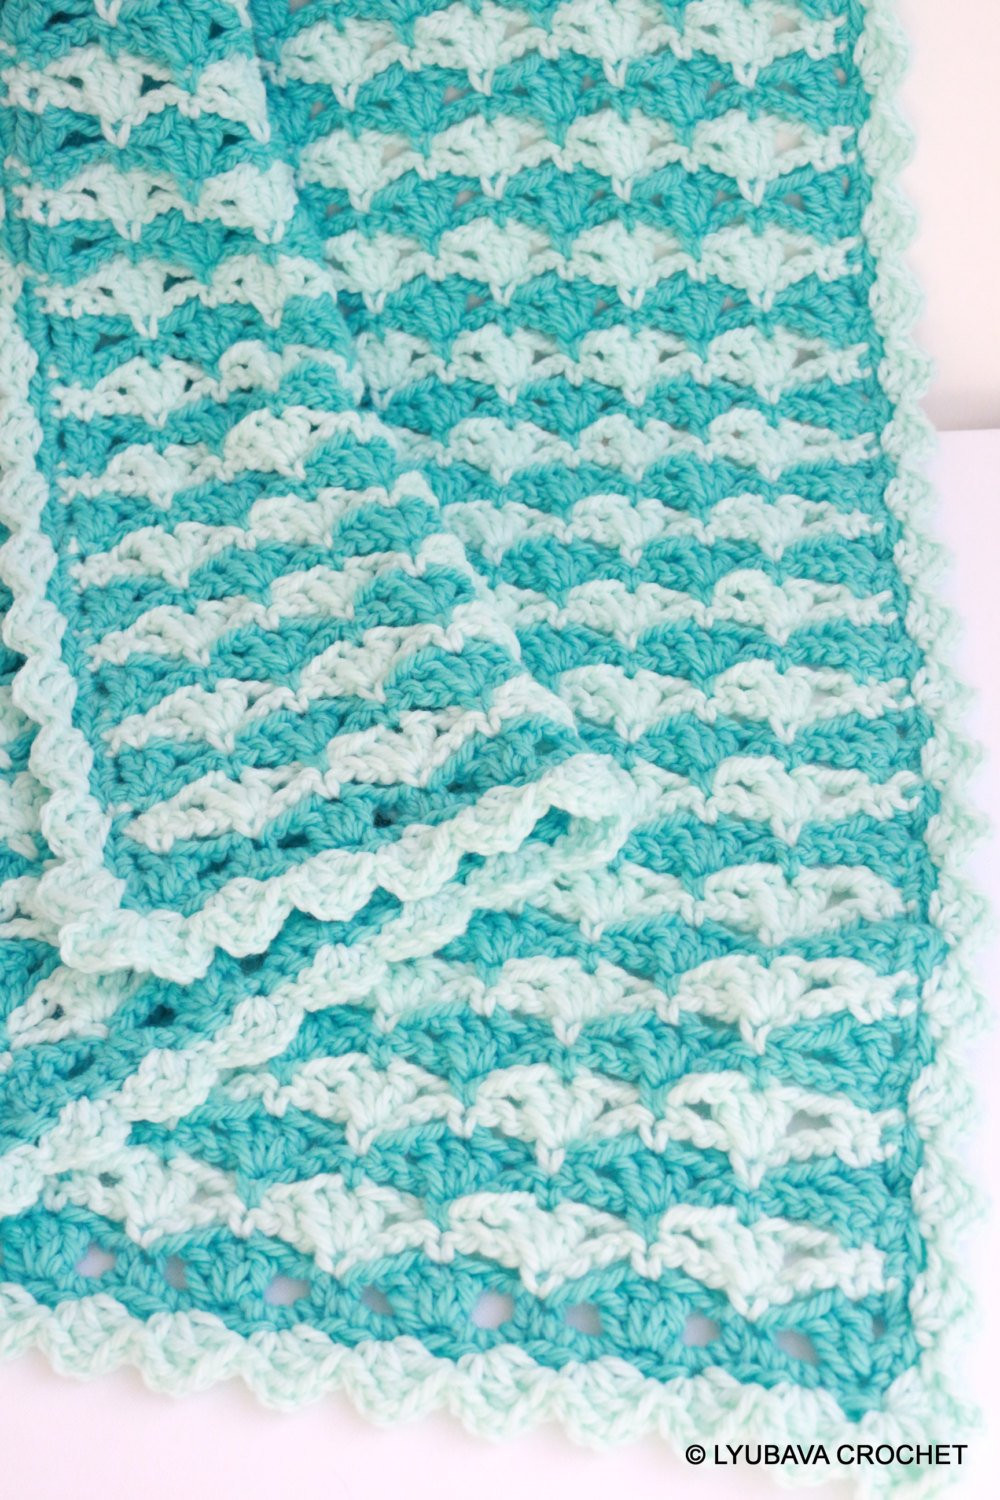 Baby Boy Crochet Blanket Patterns Inspirational Turquoise Baby Blanket Chunky Crochet Blanket for Baby Boy Of Baby Boy Crochet Blanket Patterns Luxury Baby Blanket with Cabled Border Crochet Pattern